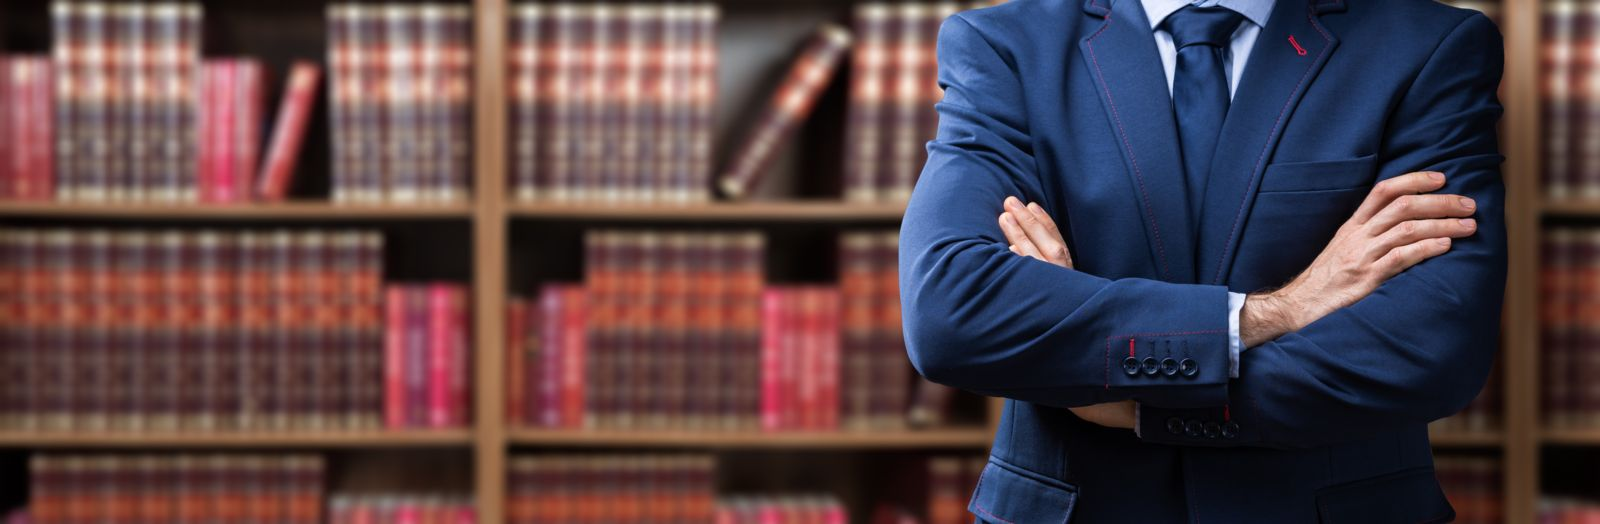 10 Questions to Ask a Criminal Defense Attorney | Browning & Long PLLC